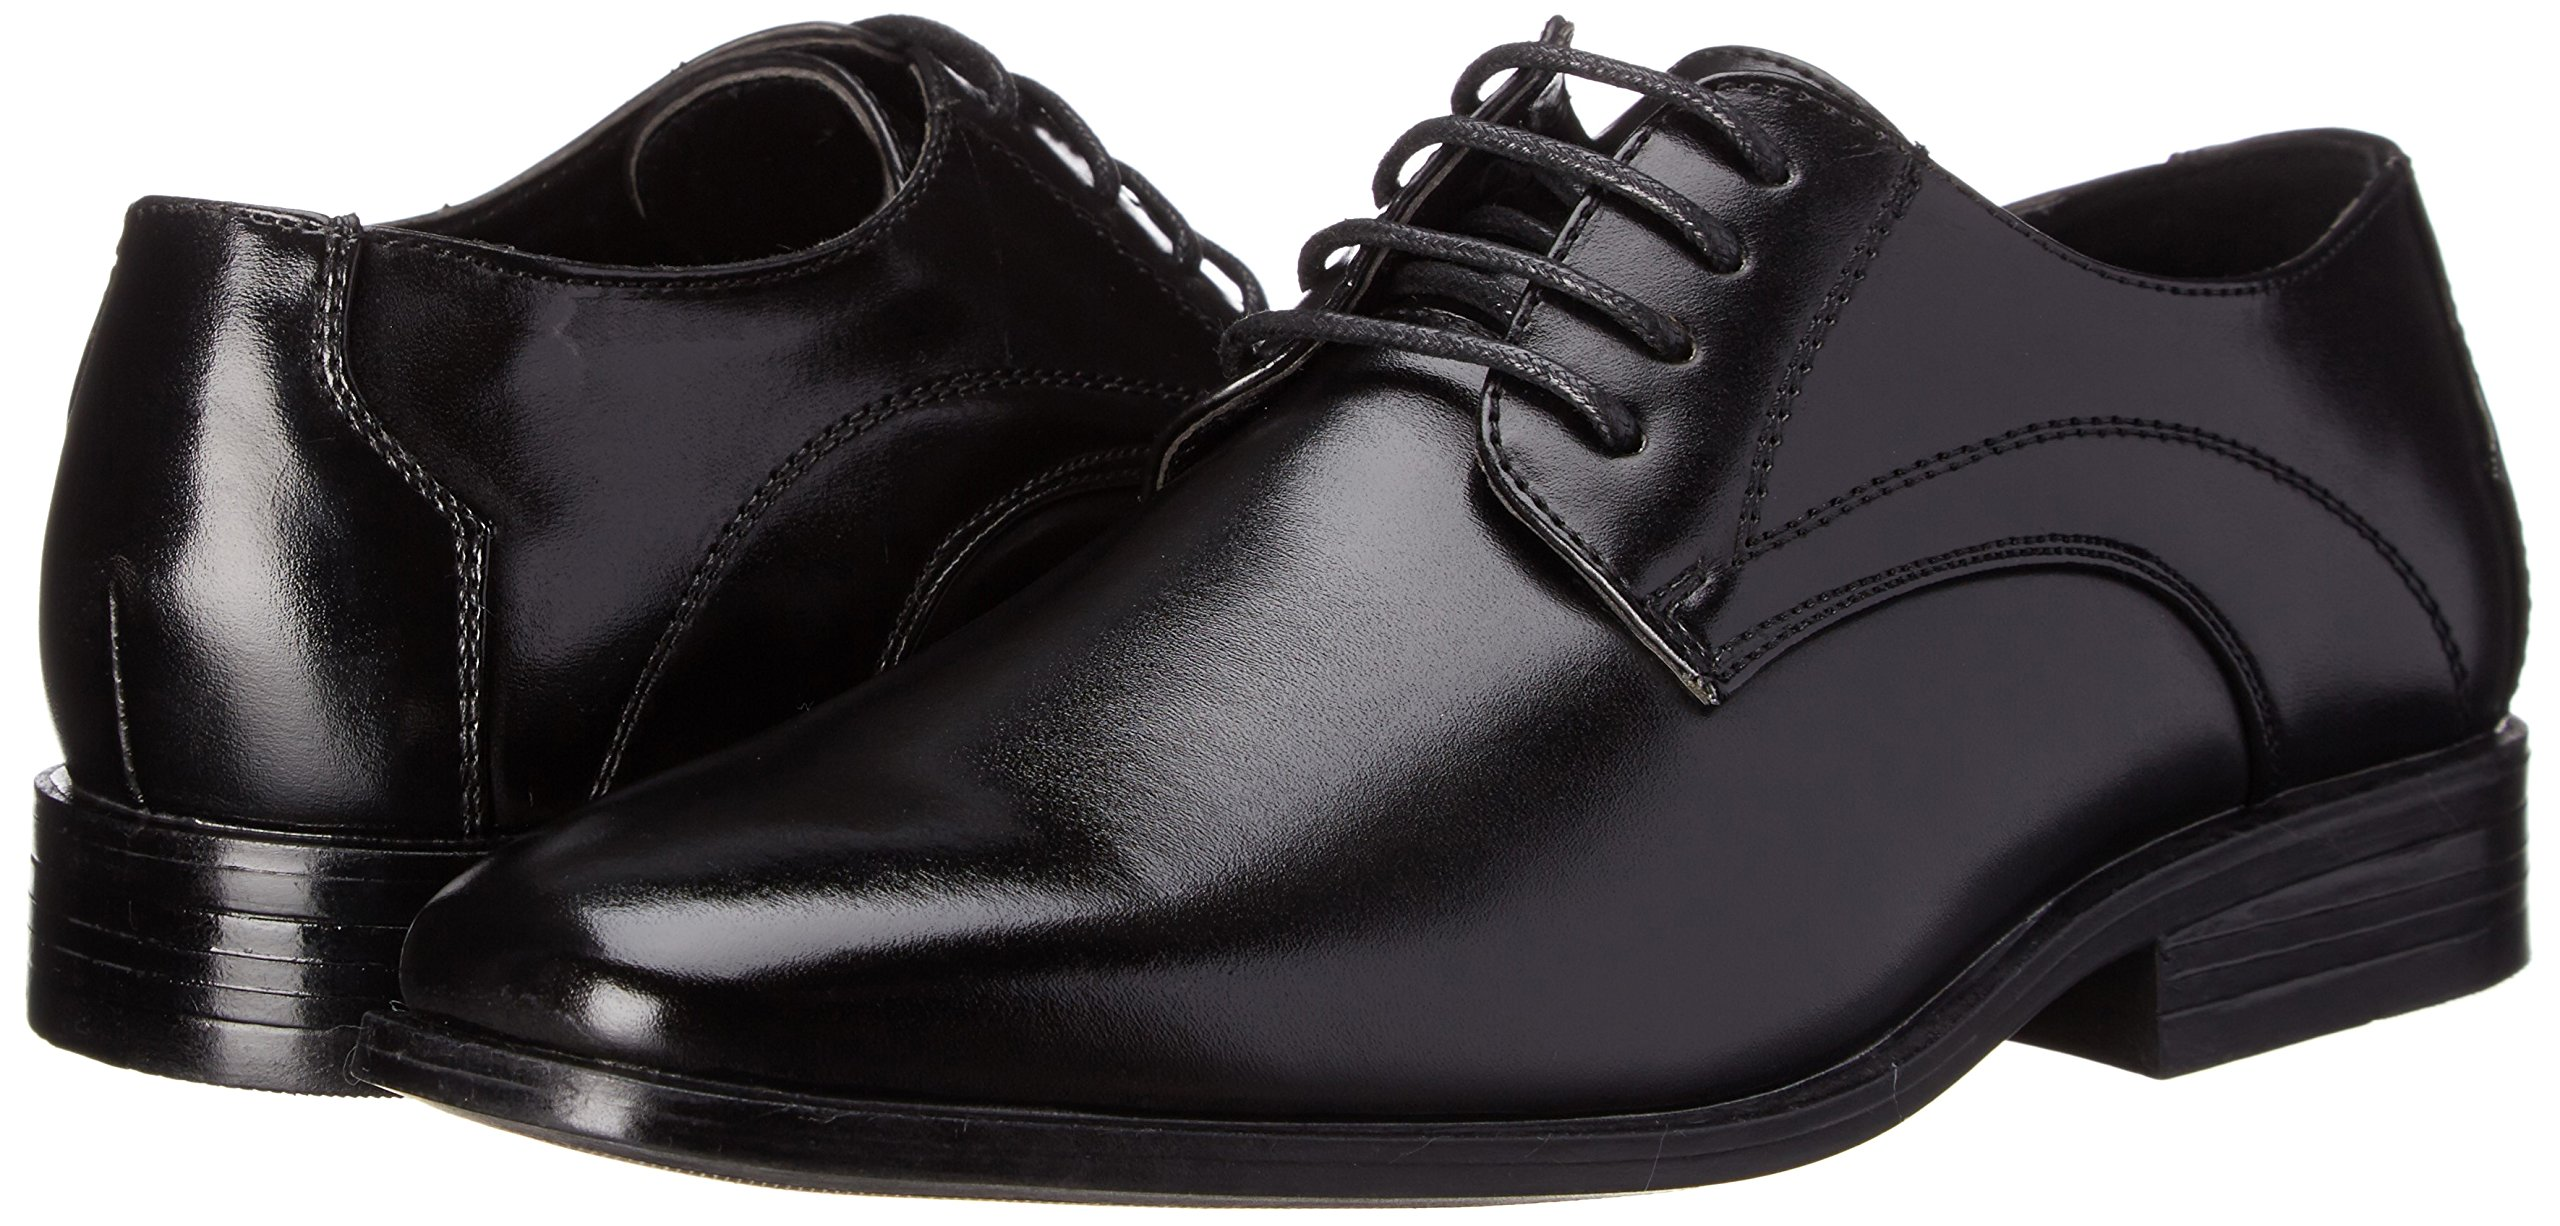 Stacy Adams Carmichael Plain Toe Lace-up Uniform Oxford Dress Shoe (Little Kid/Big Kid),Black,4 M US Big Kid by STACY ADAMS (Image #6)